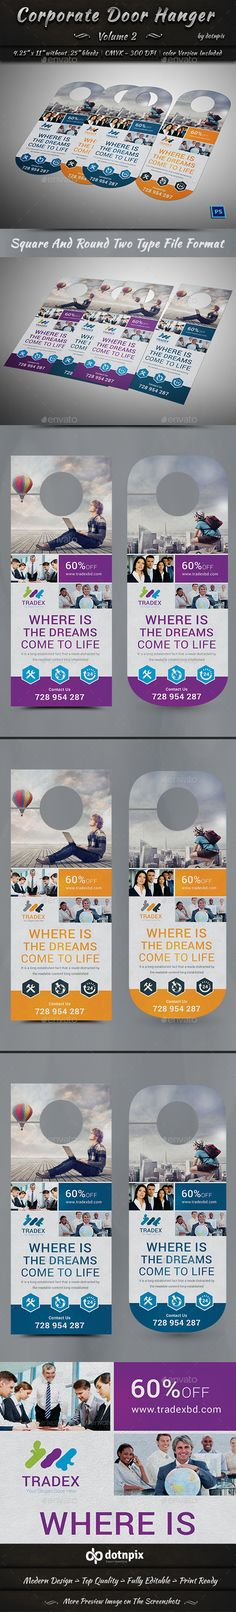 Awesome Door Hanger Designs for Your Next Marketing Campaign - promotional door hanger template